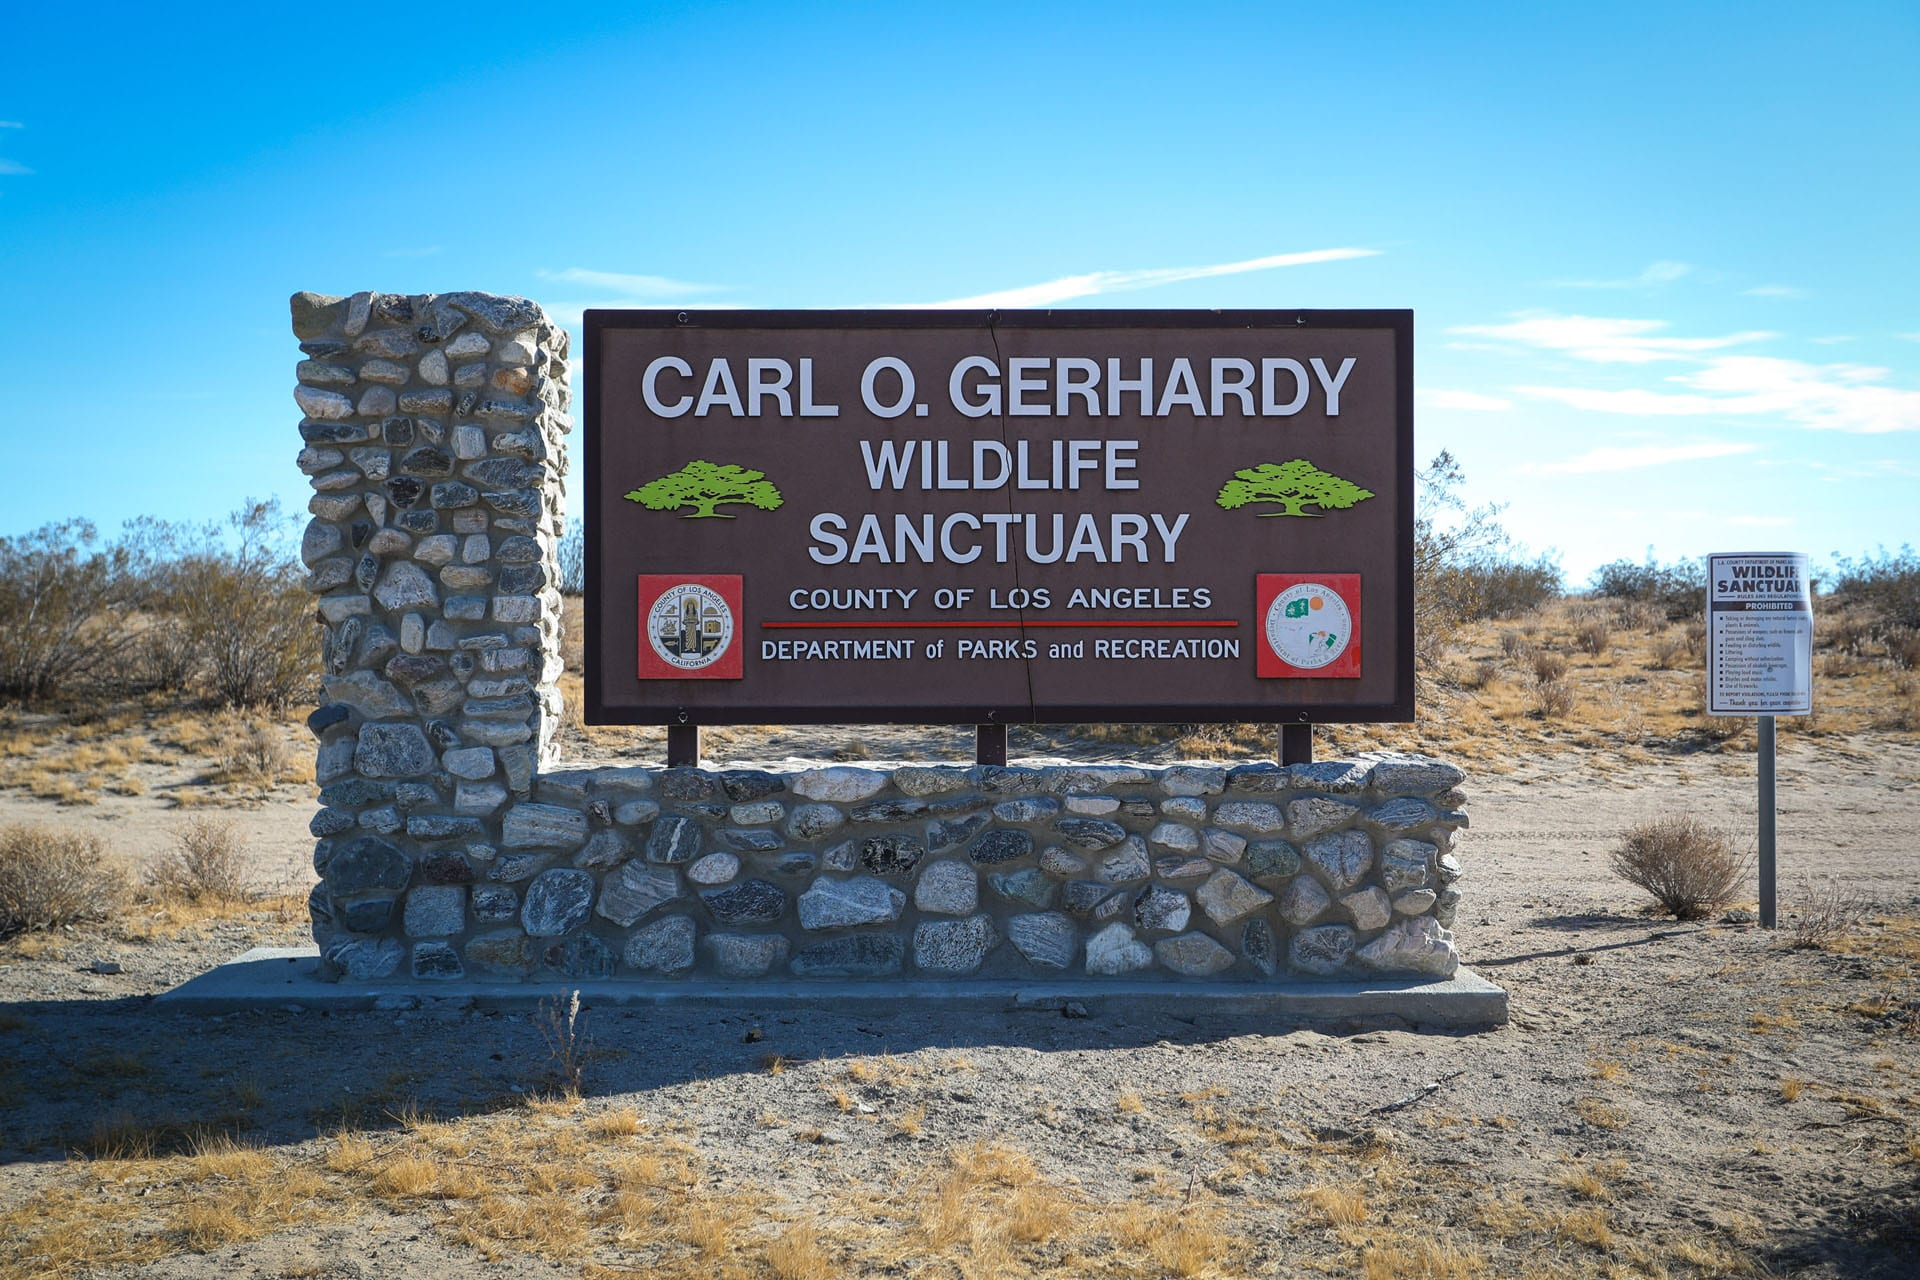 Carl O. Gerhandy Wildlife Sanctuary sign